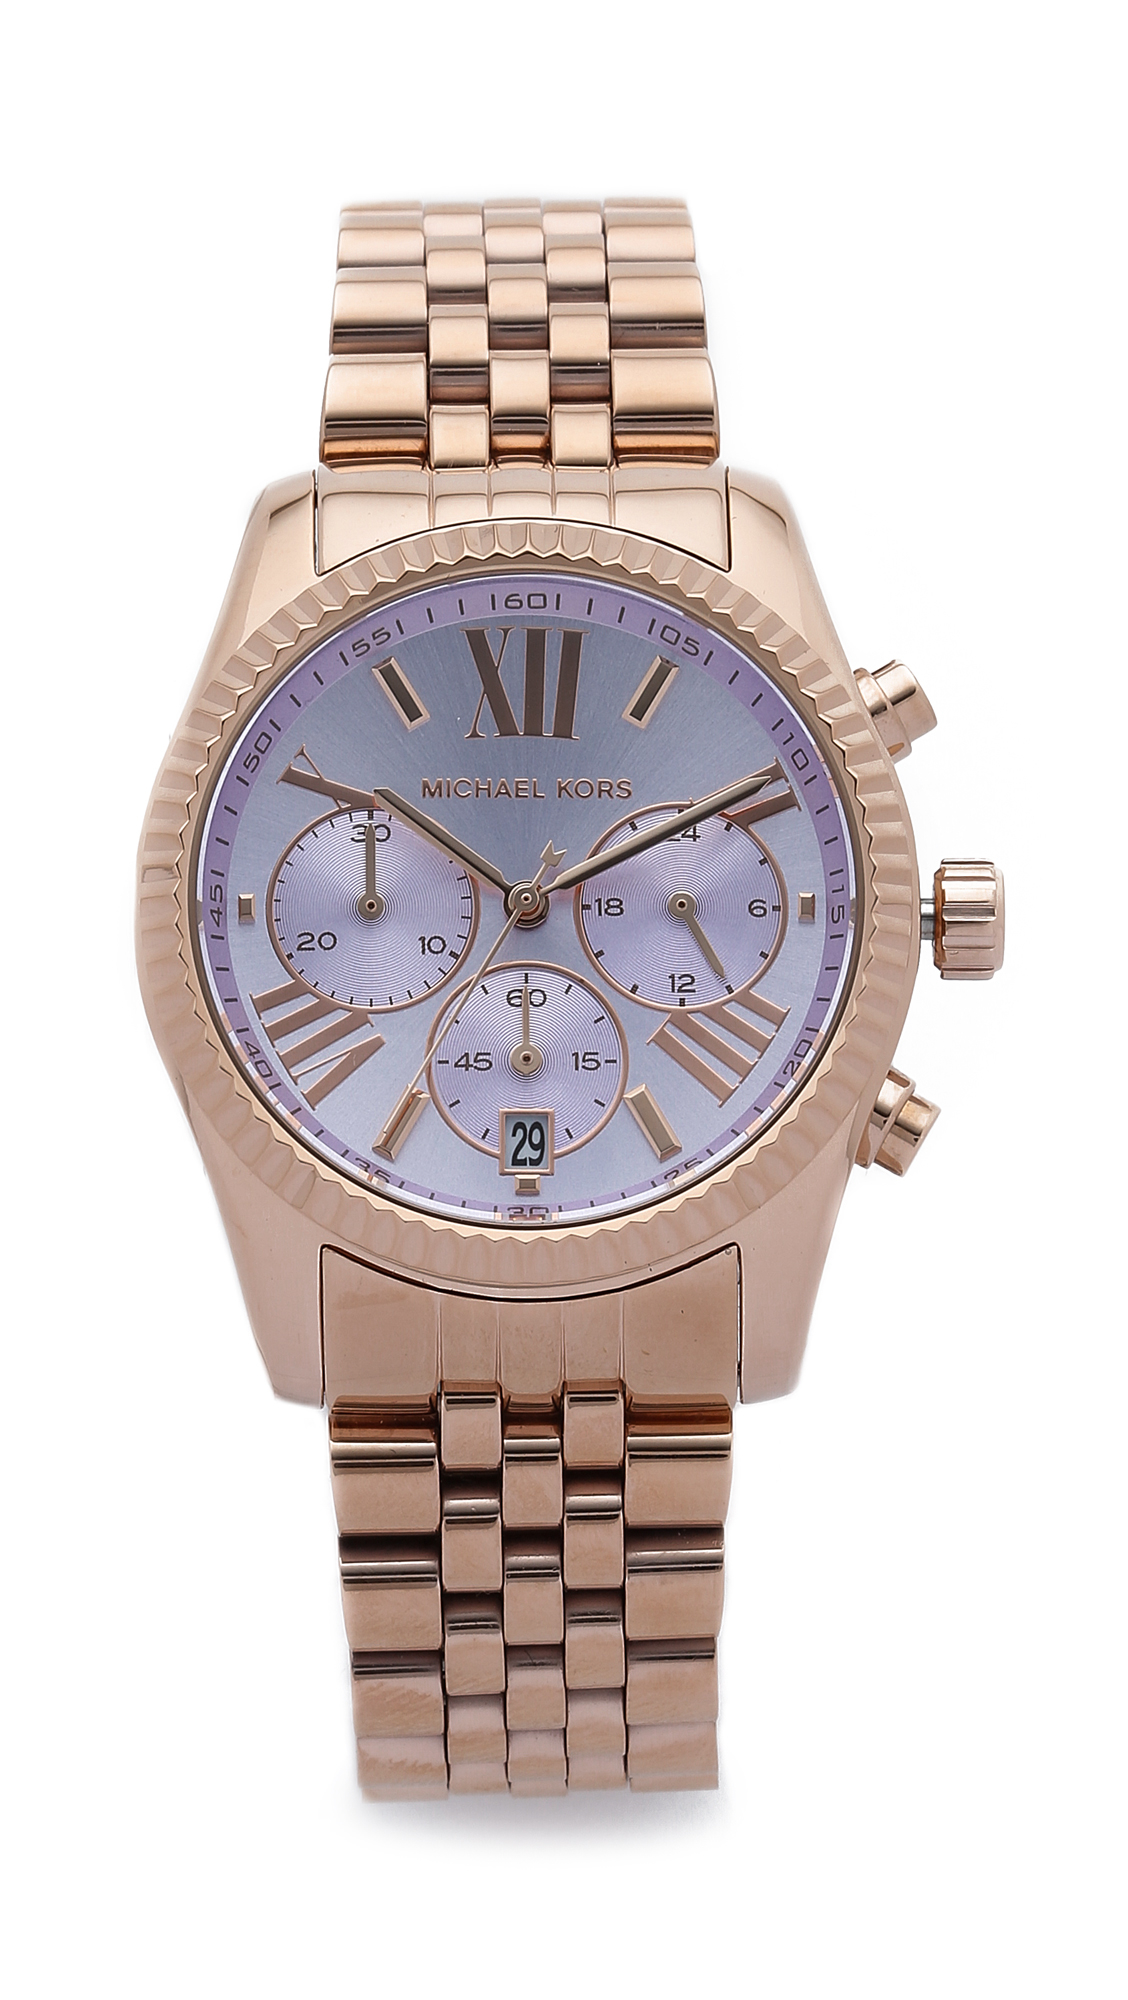 Michael Kors Rose Gold Watch With Roman Numerals